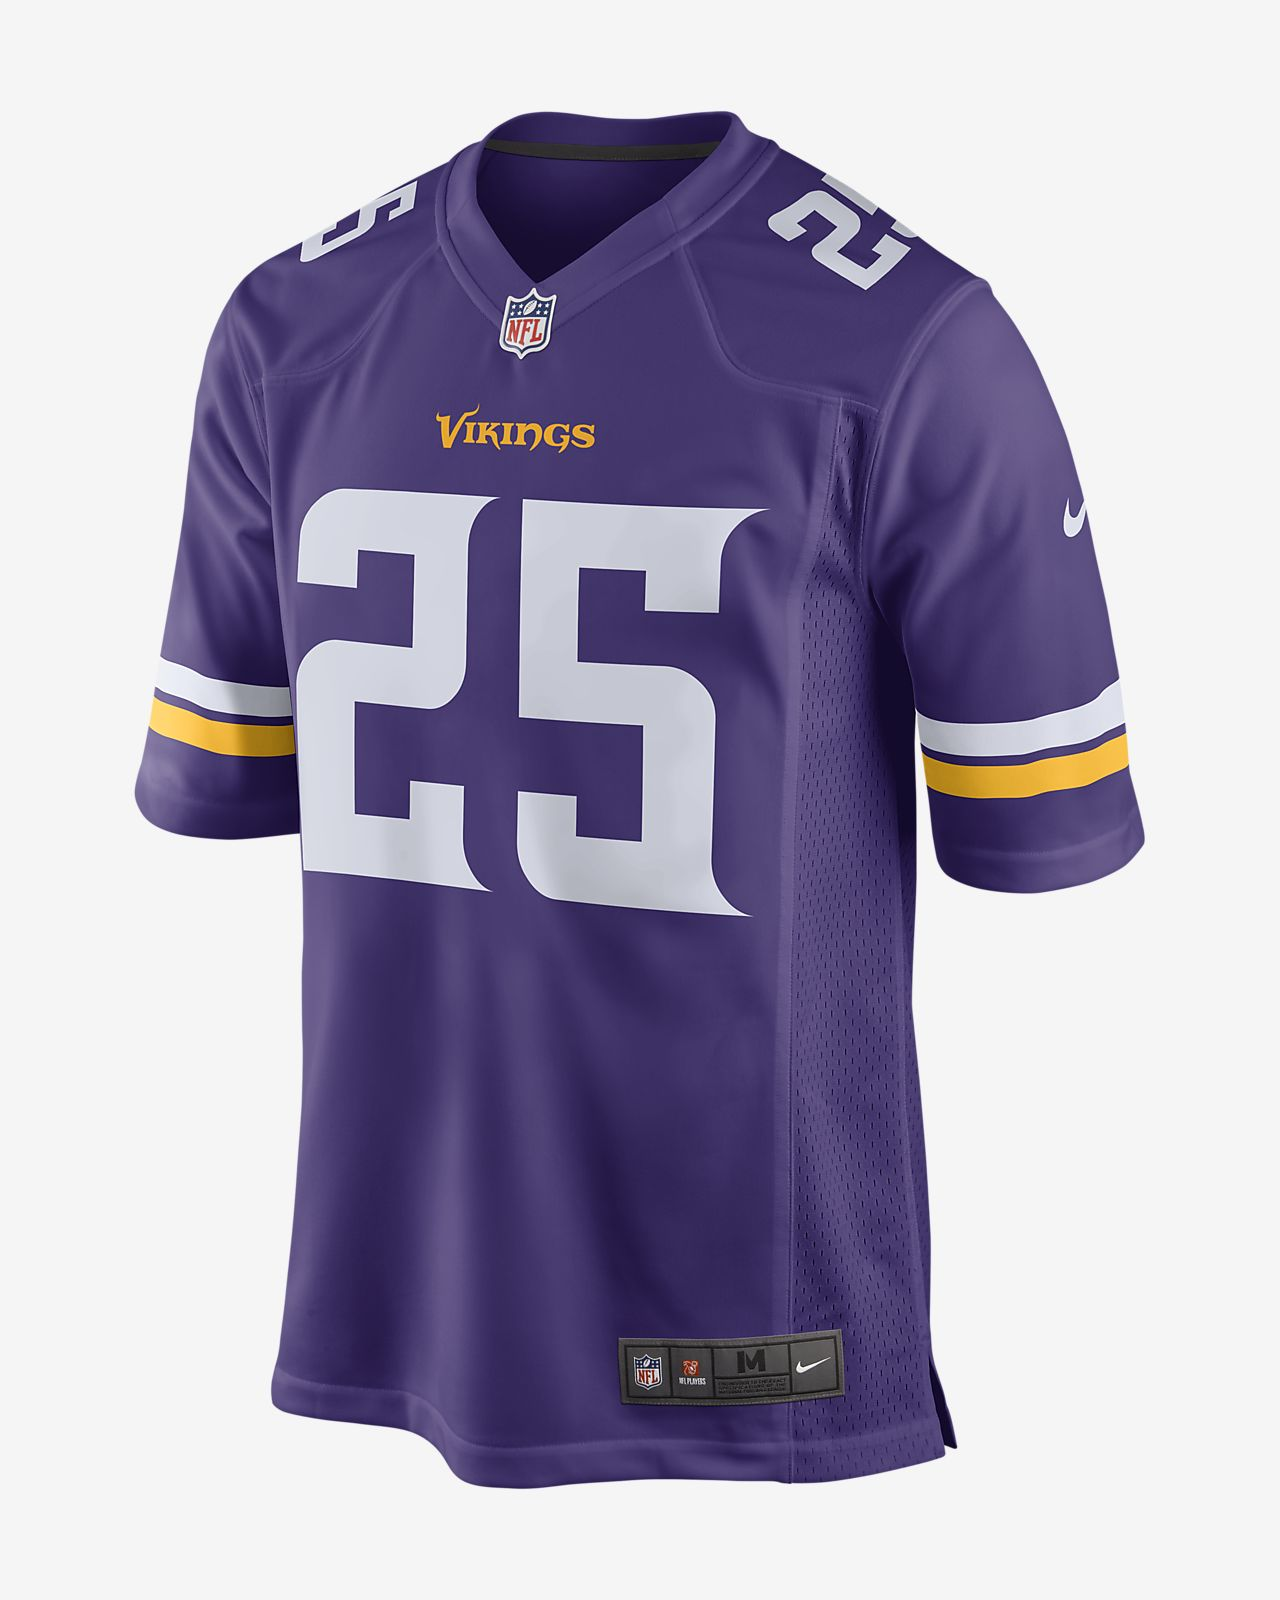 c09820457 NFL Minnesota Vikings (Latavius Murray) Men s American Football Home ...